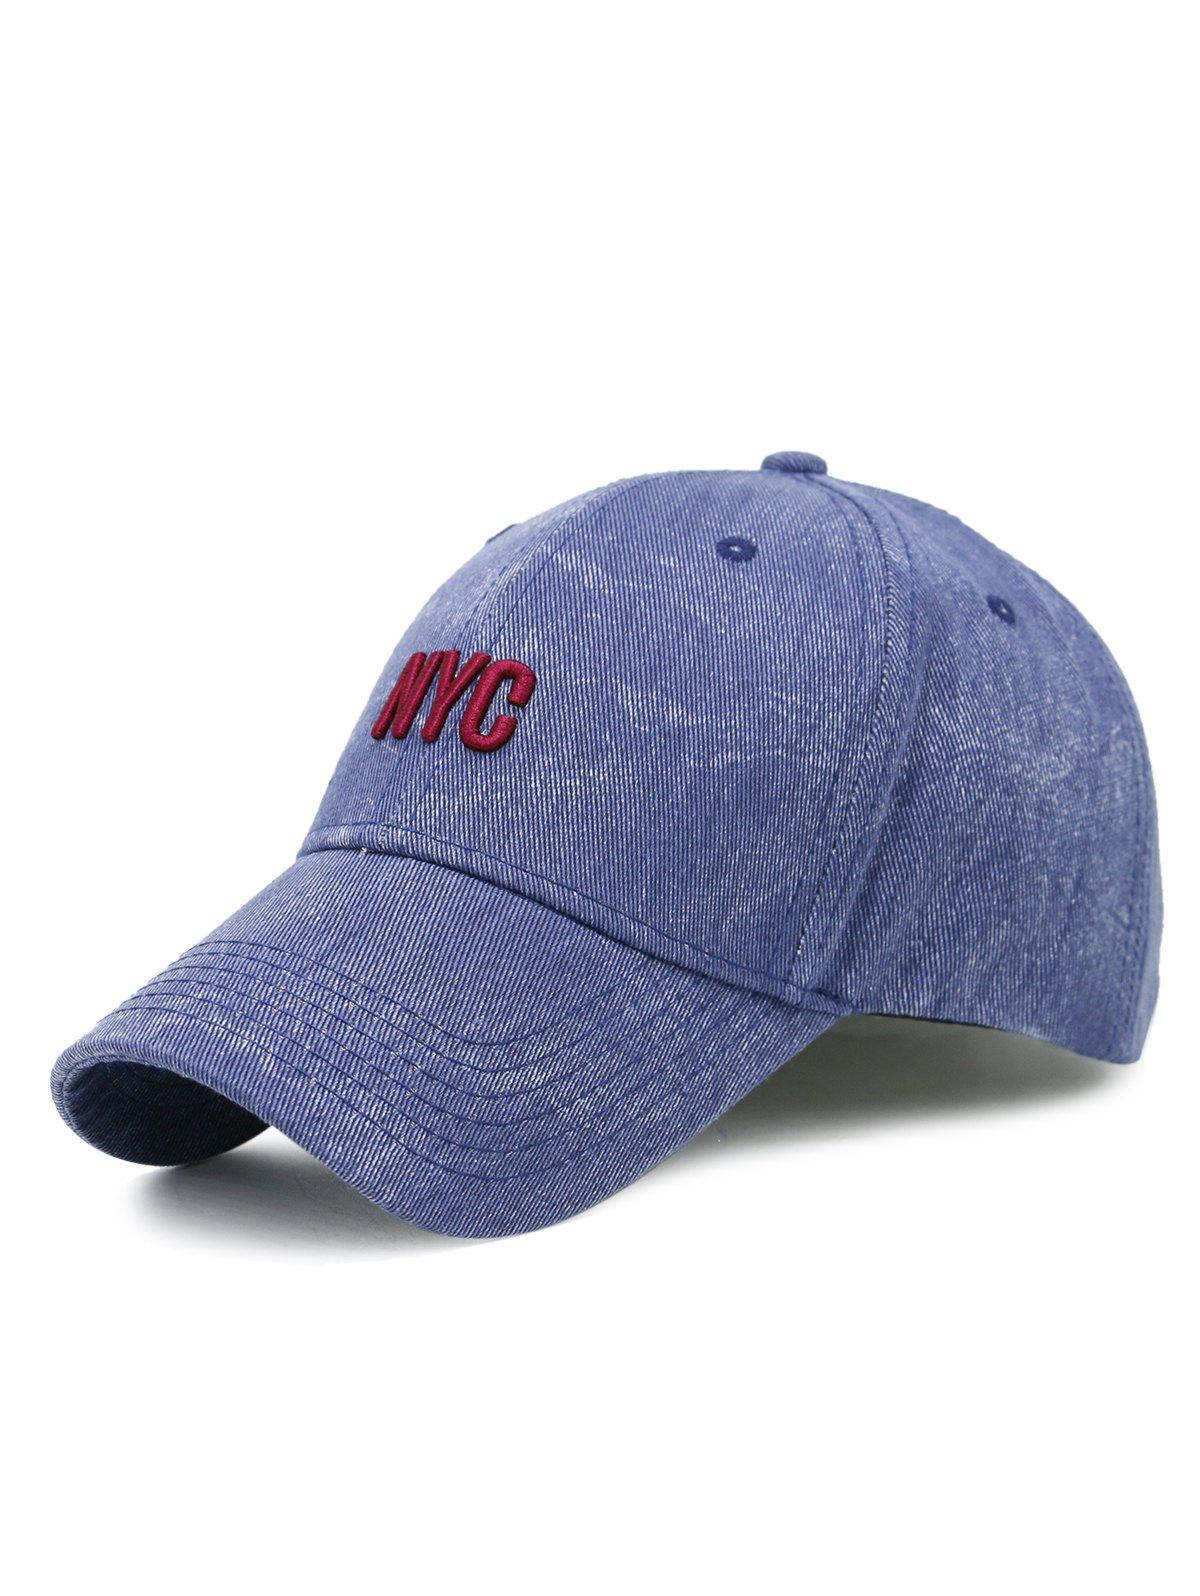 2018 Unique Nyc Embroidery Washed Baseball Hat Cerulean In Hats